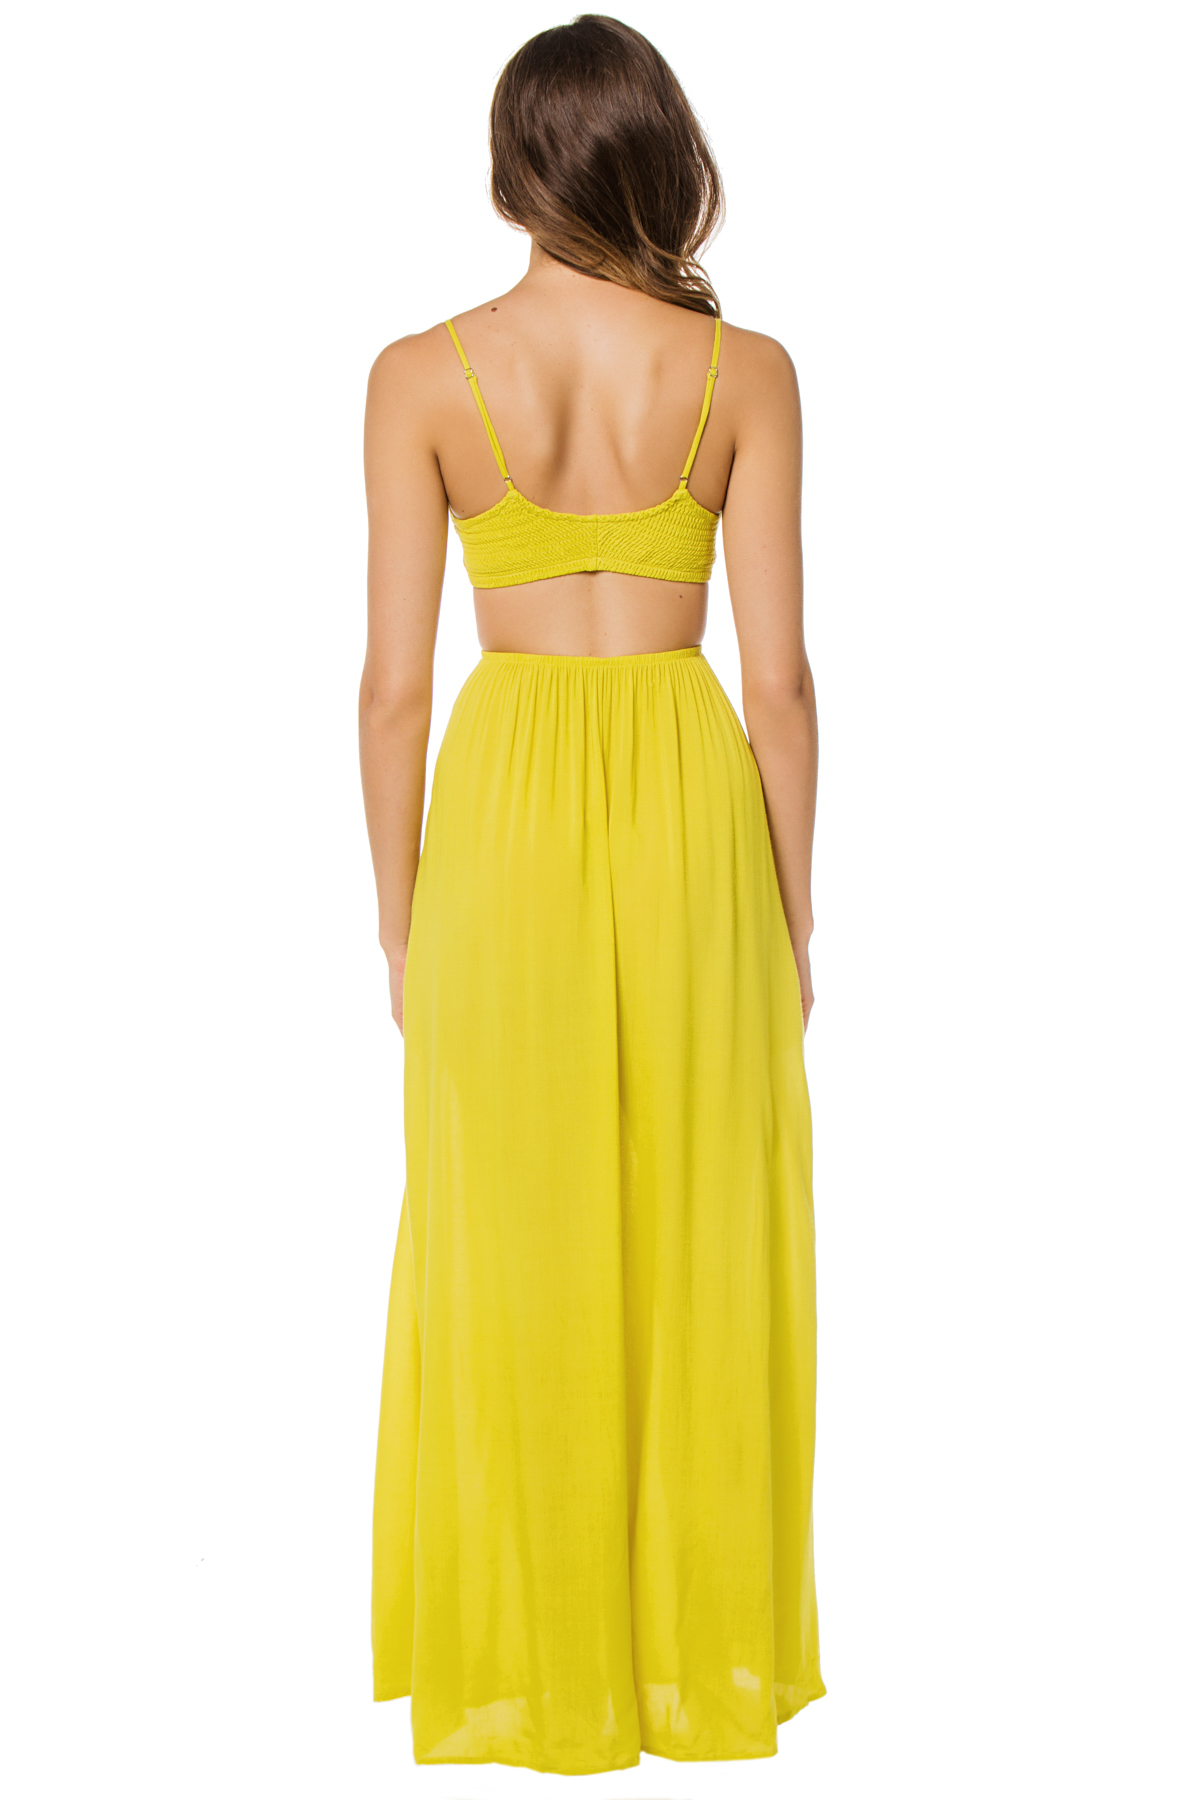 Smocked Neon Cutout Maxi Dress - Citrus 2